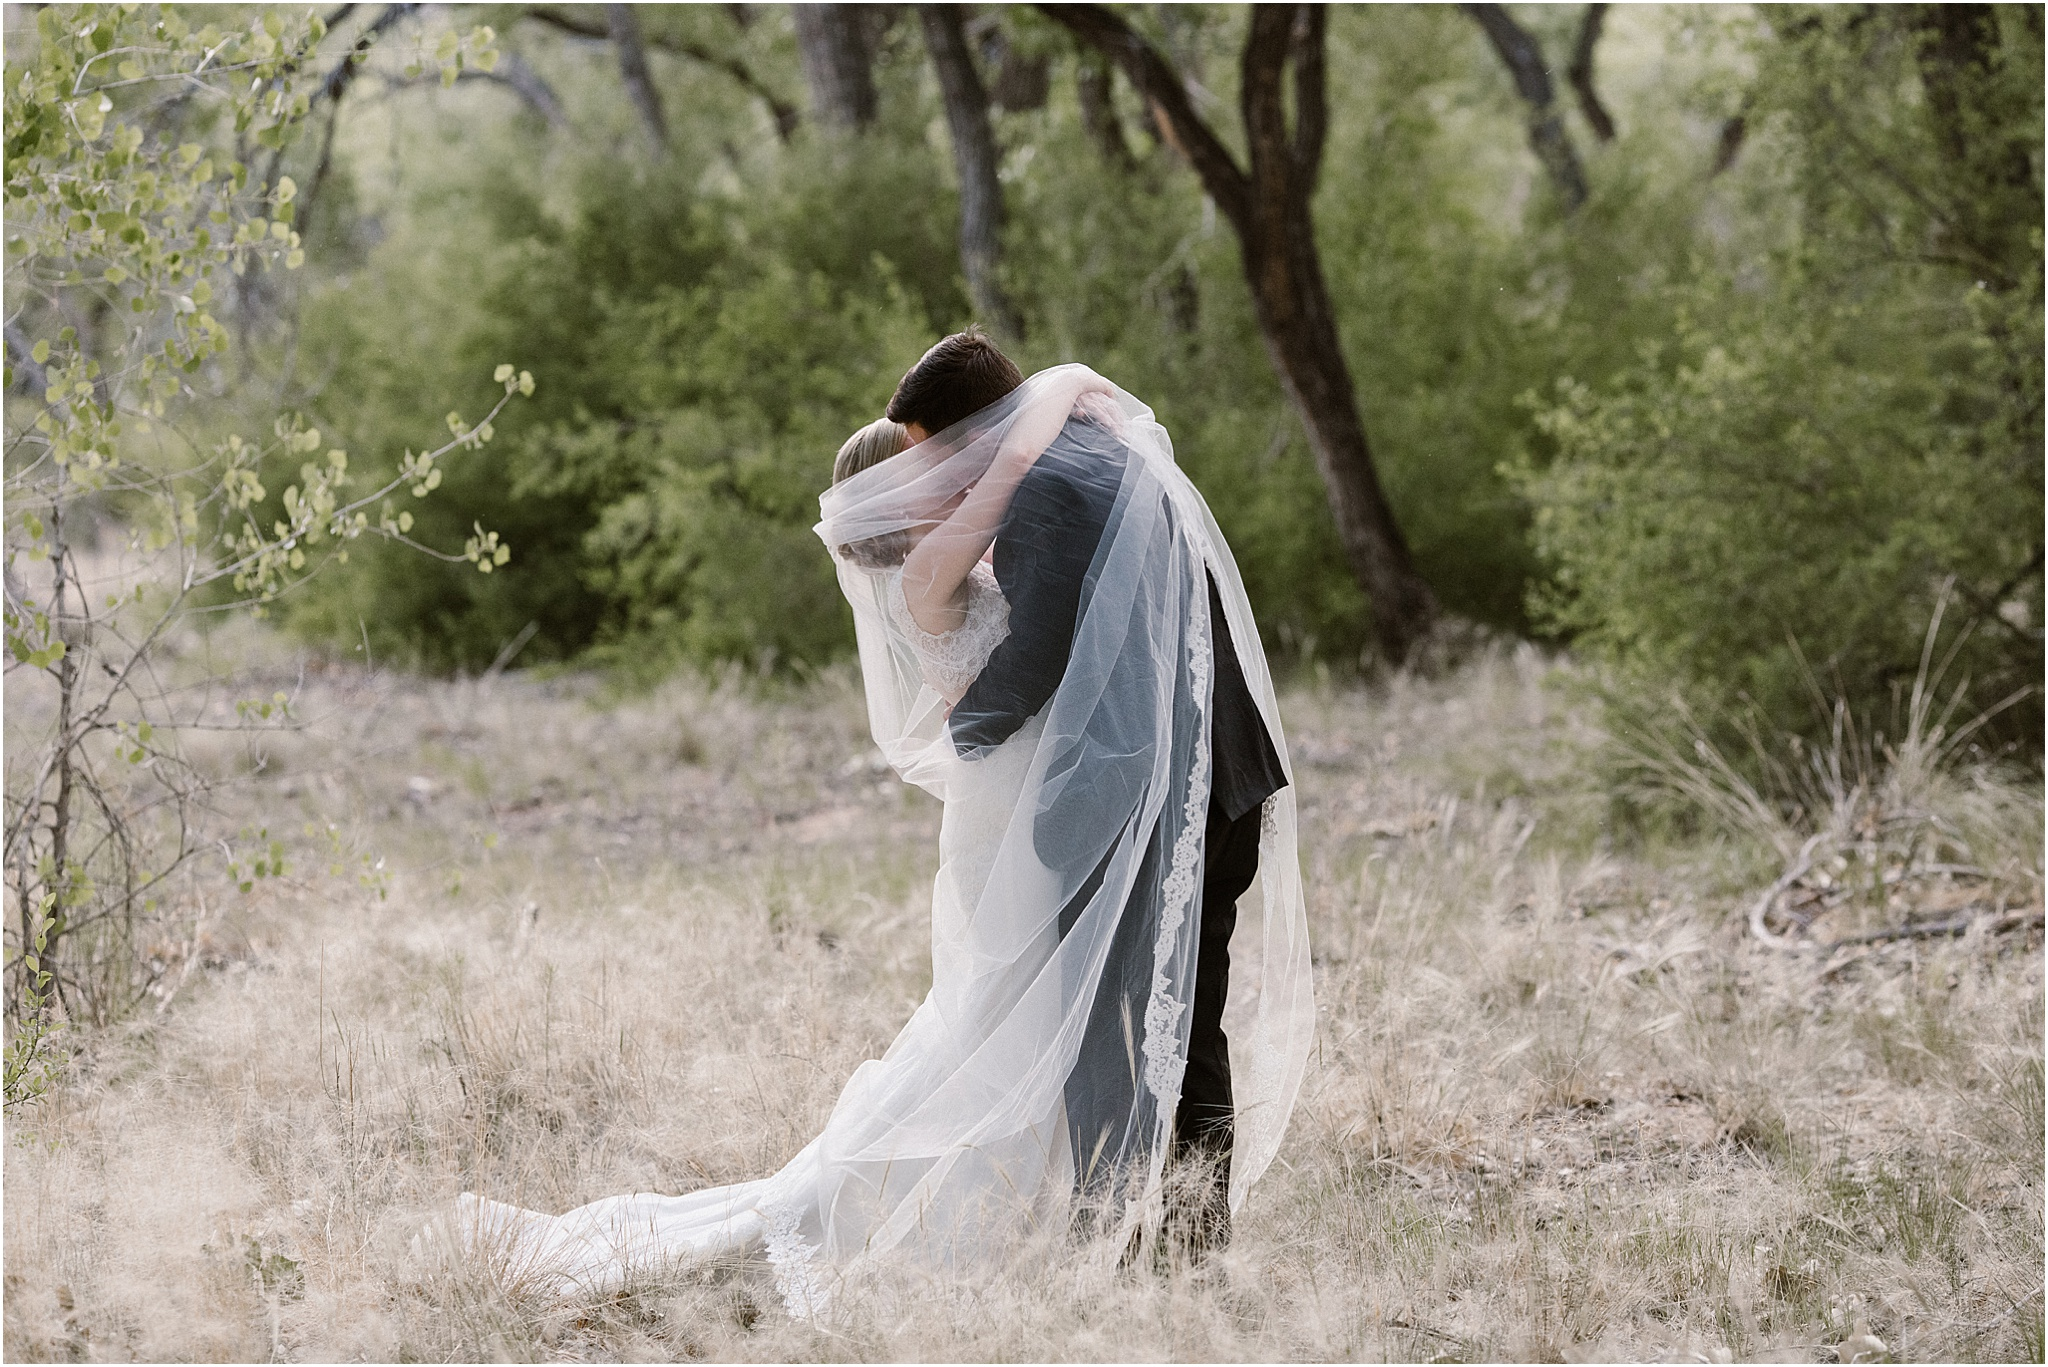 JENNA_JEROME_BLUE ROSE PHOTOGRAPHY_ABQ WEDDING_33